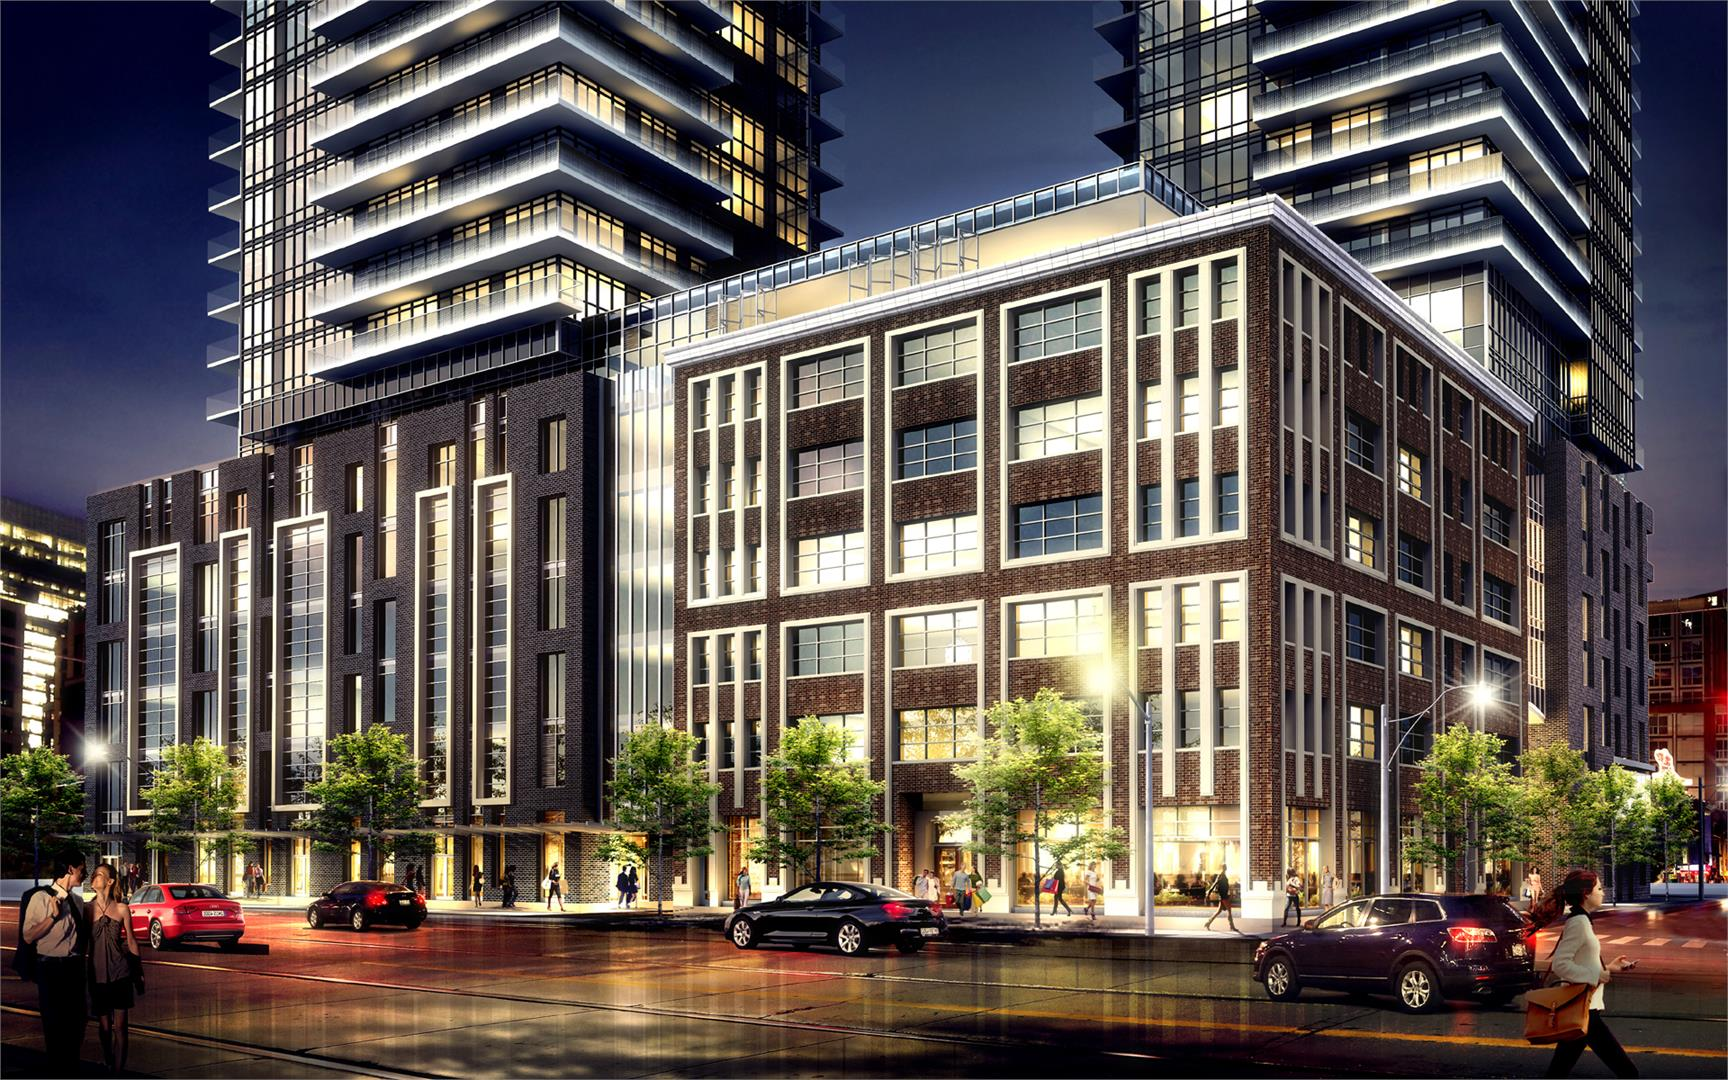 A look at 355 King Street West and its podium close up.